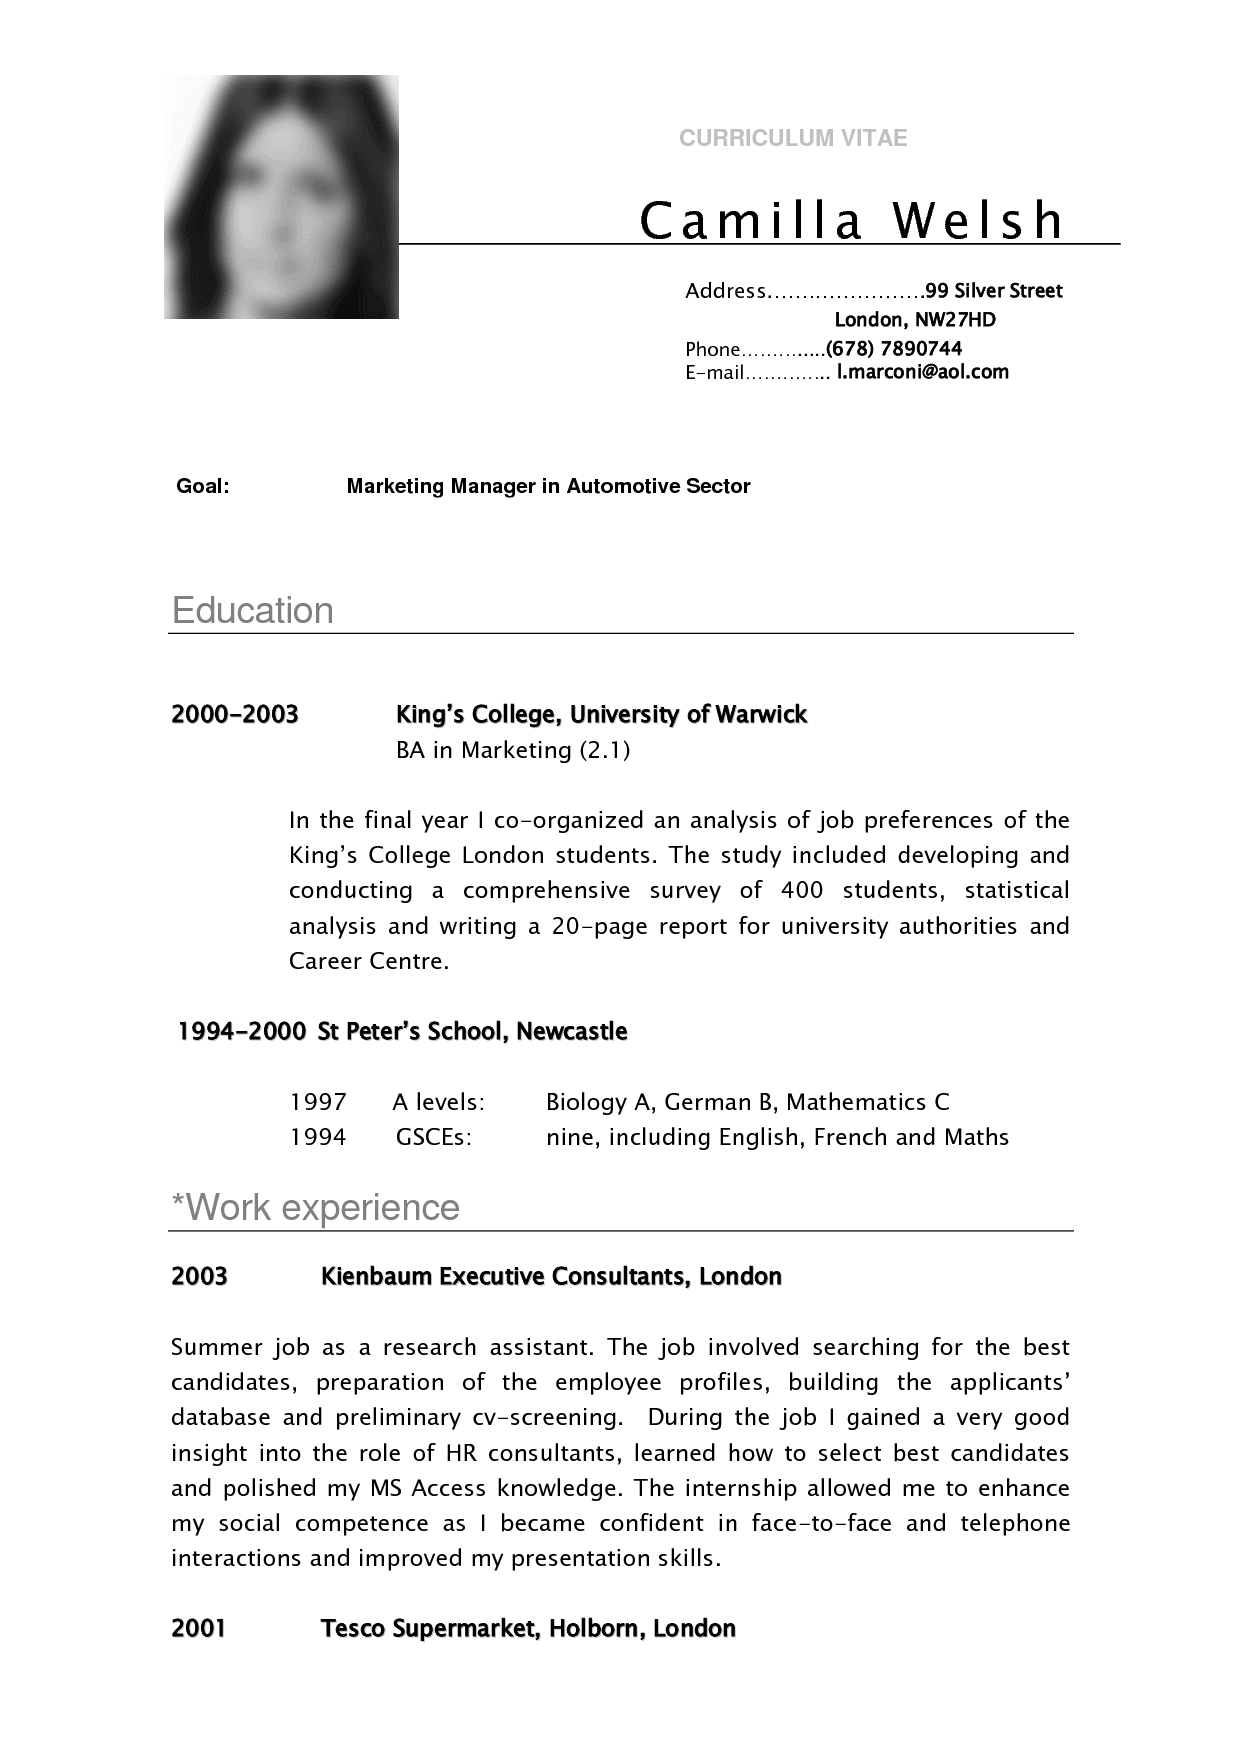 CV SAMPLE CURRICULUM VITAE Camilla for school